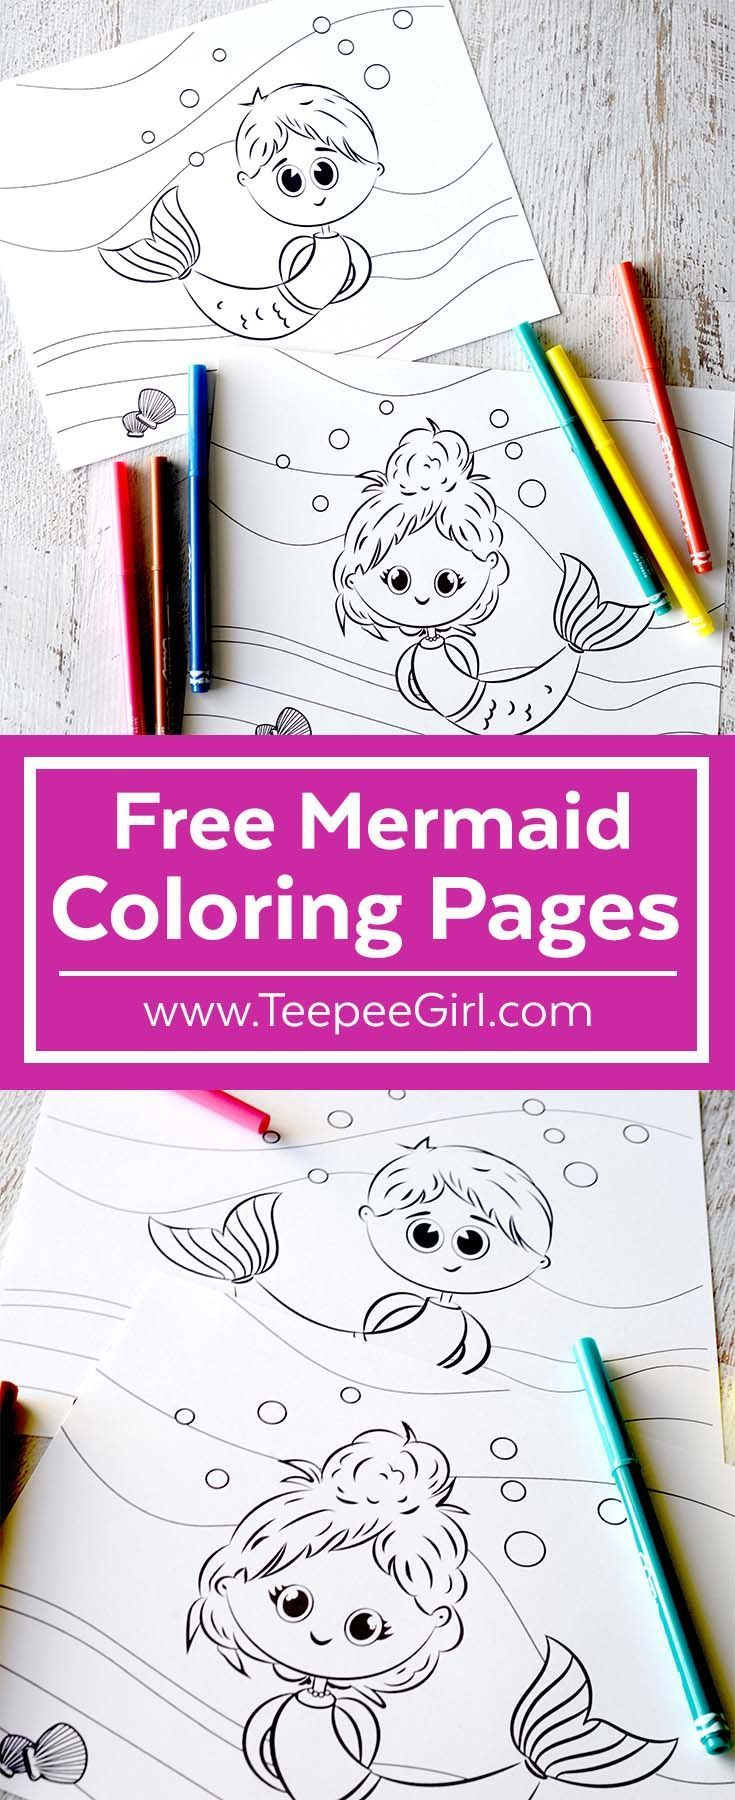 Free Mermaid Coloring Pages | Coloring Pages | Adult Coloring ...